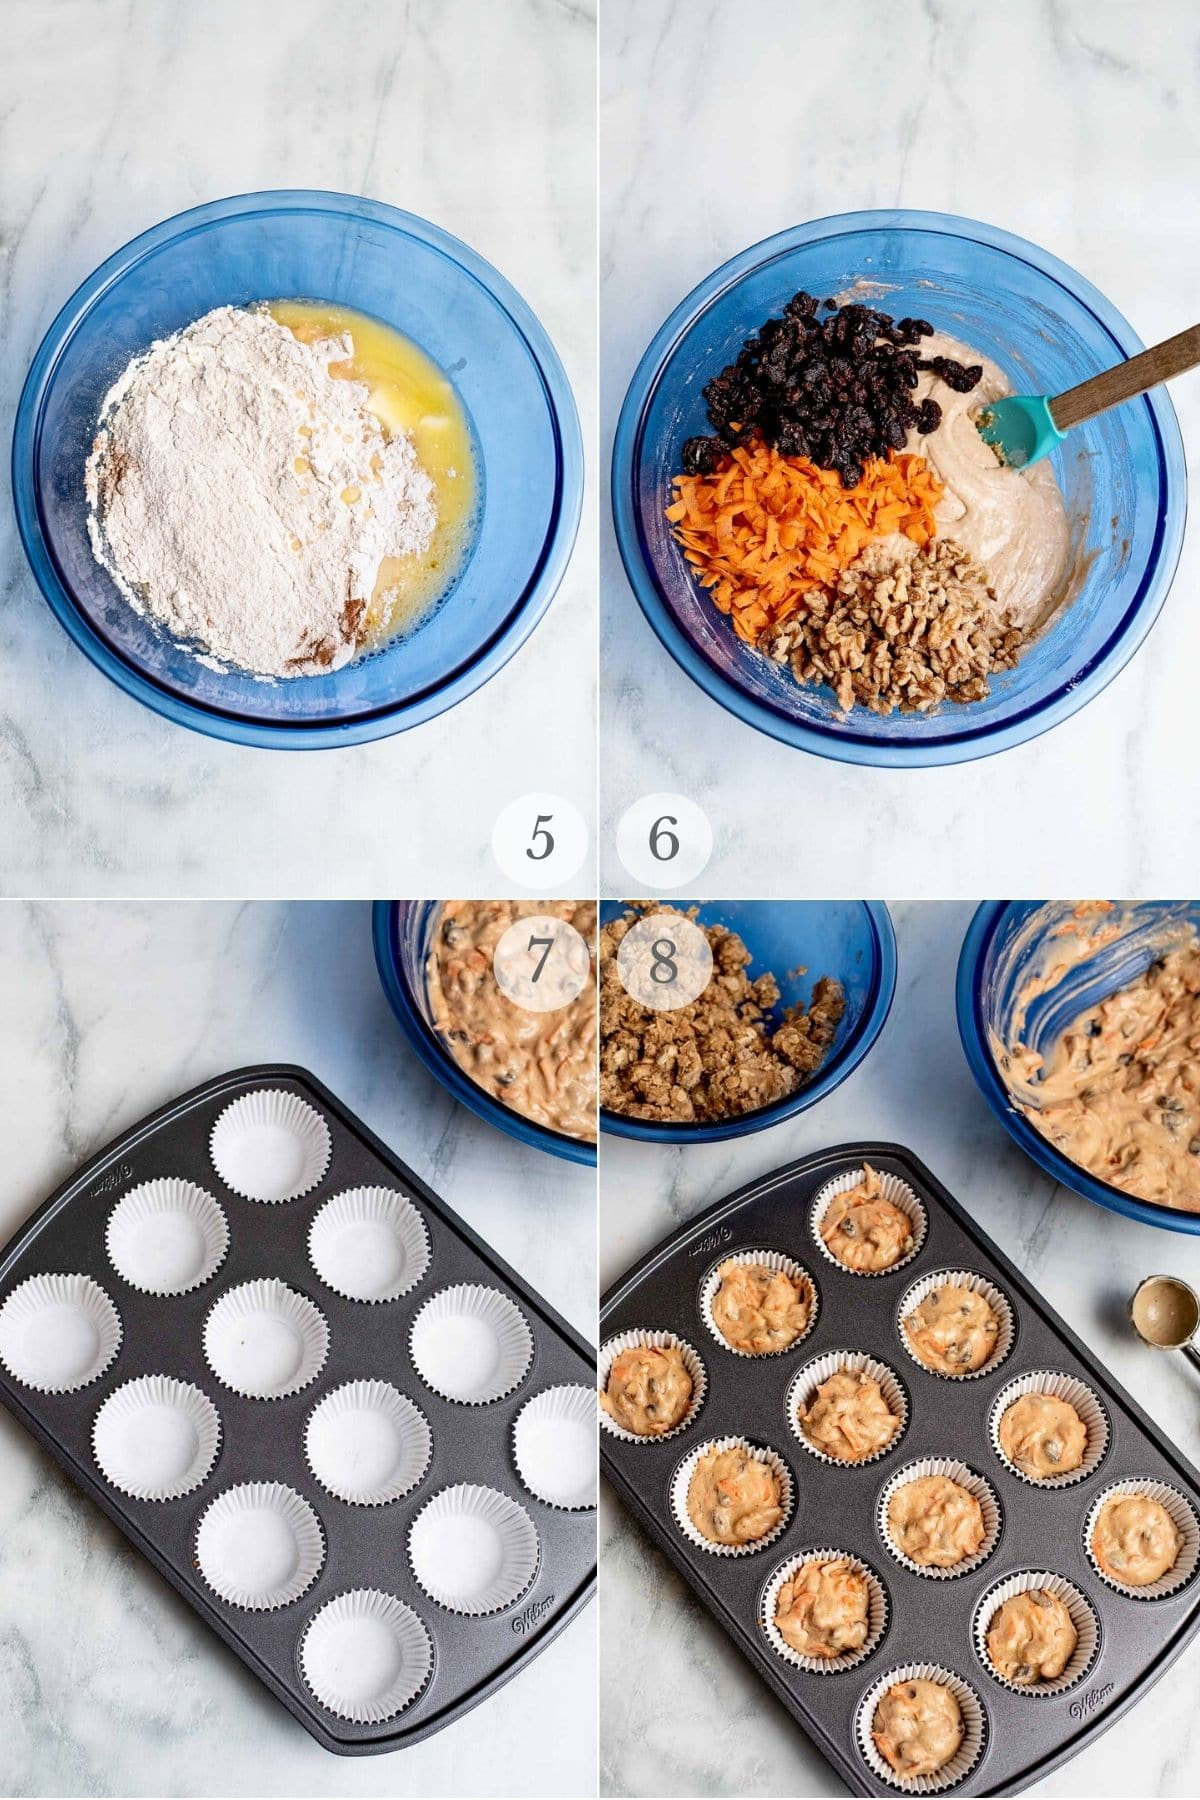 carrot cake muffins recipe steps 5-8